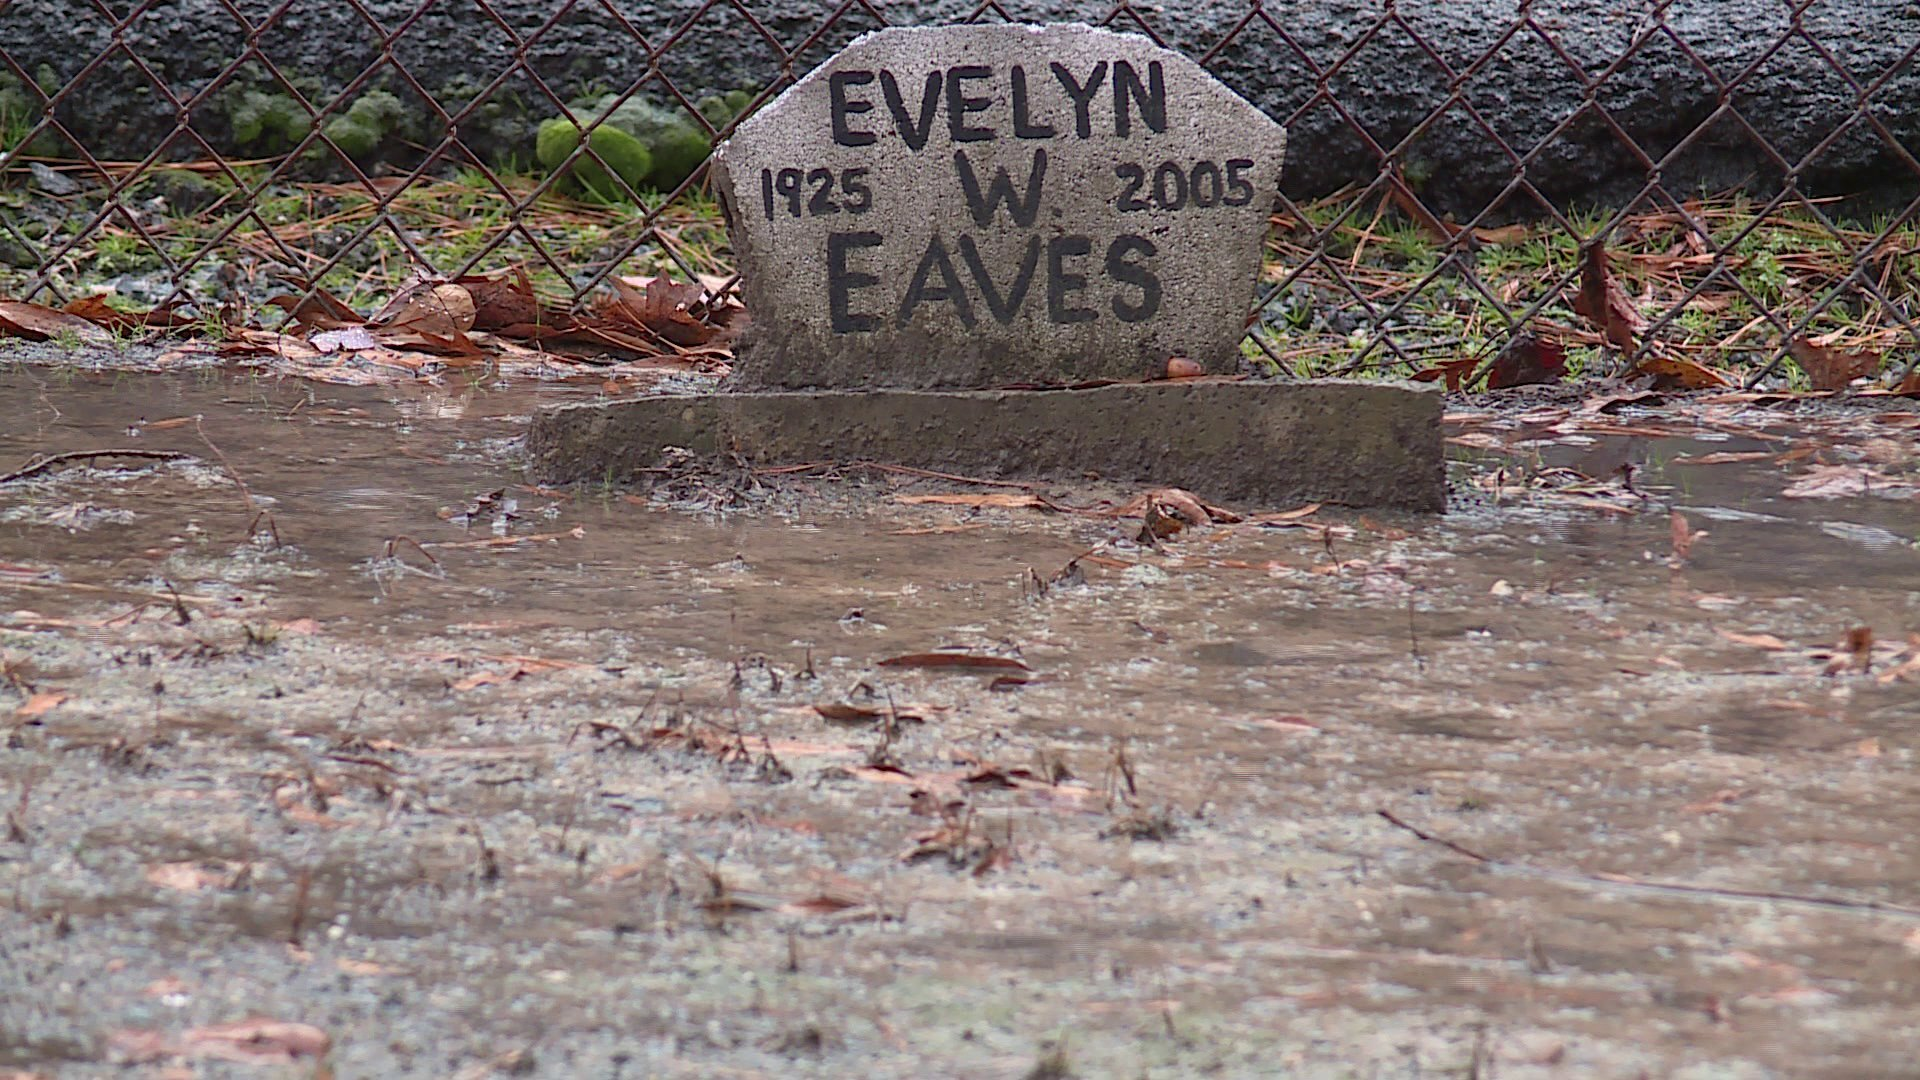 Photos: Man says 'simple solution' would stop century-old private cemetery from flooding